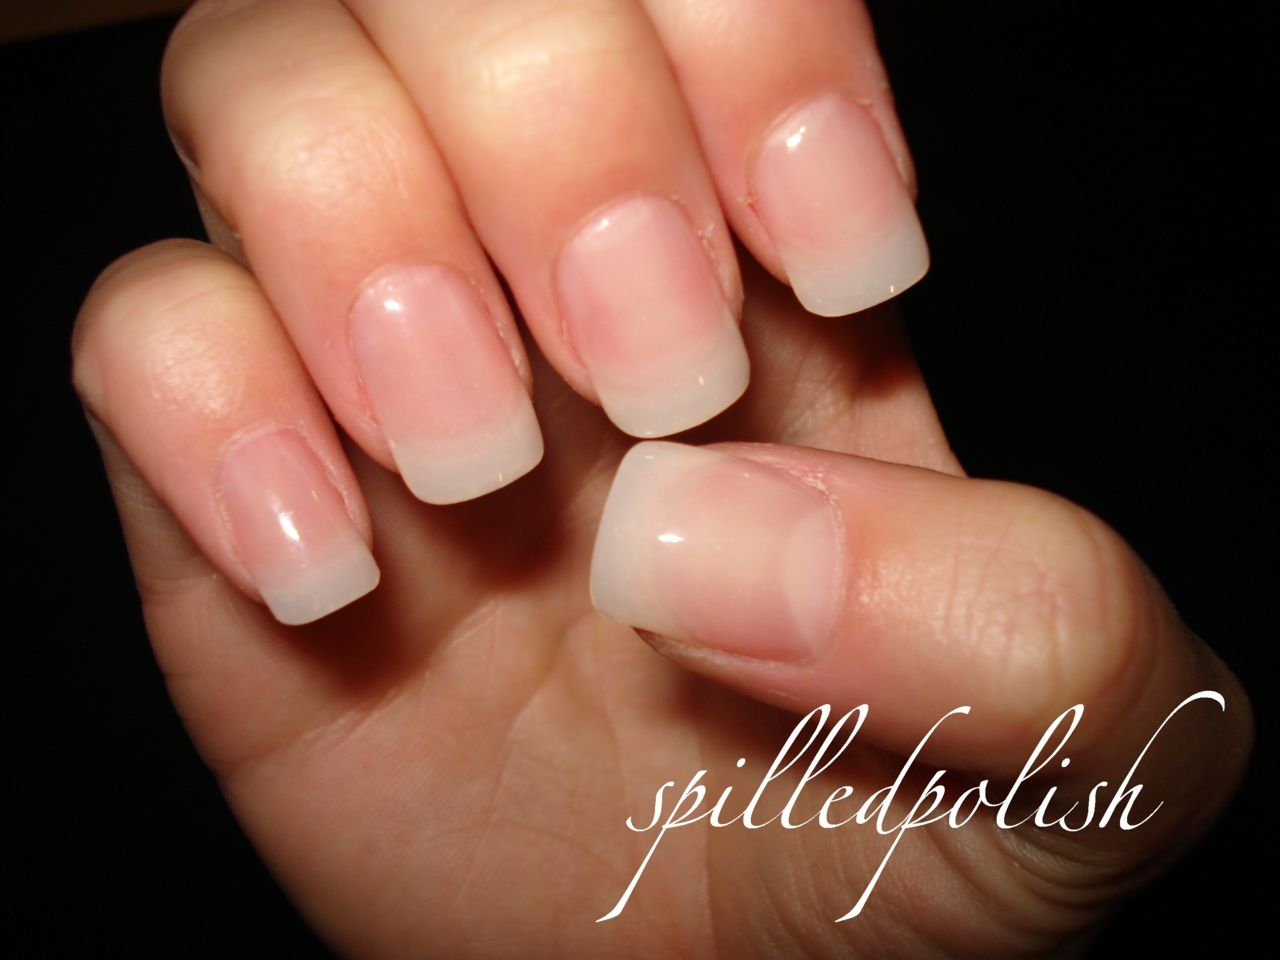 Classic nails | fingers and toes ♧ | Pinterest | Acrylics, Natural ...